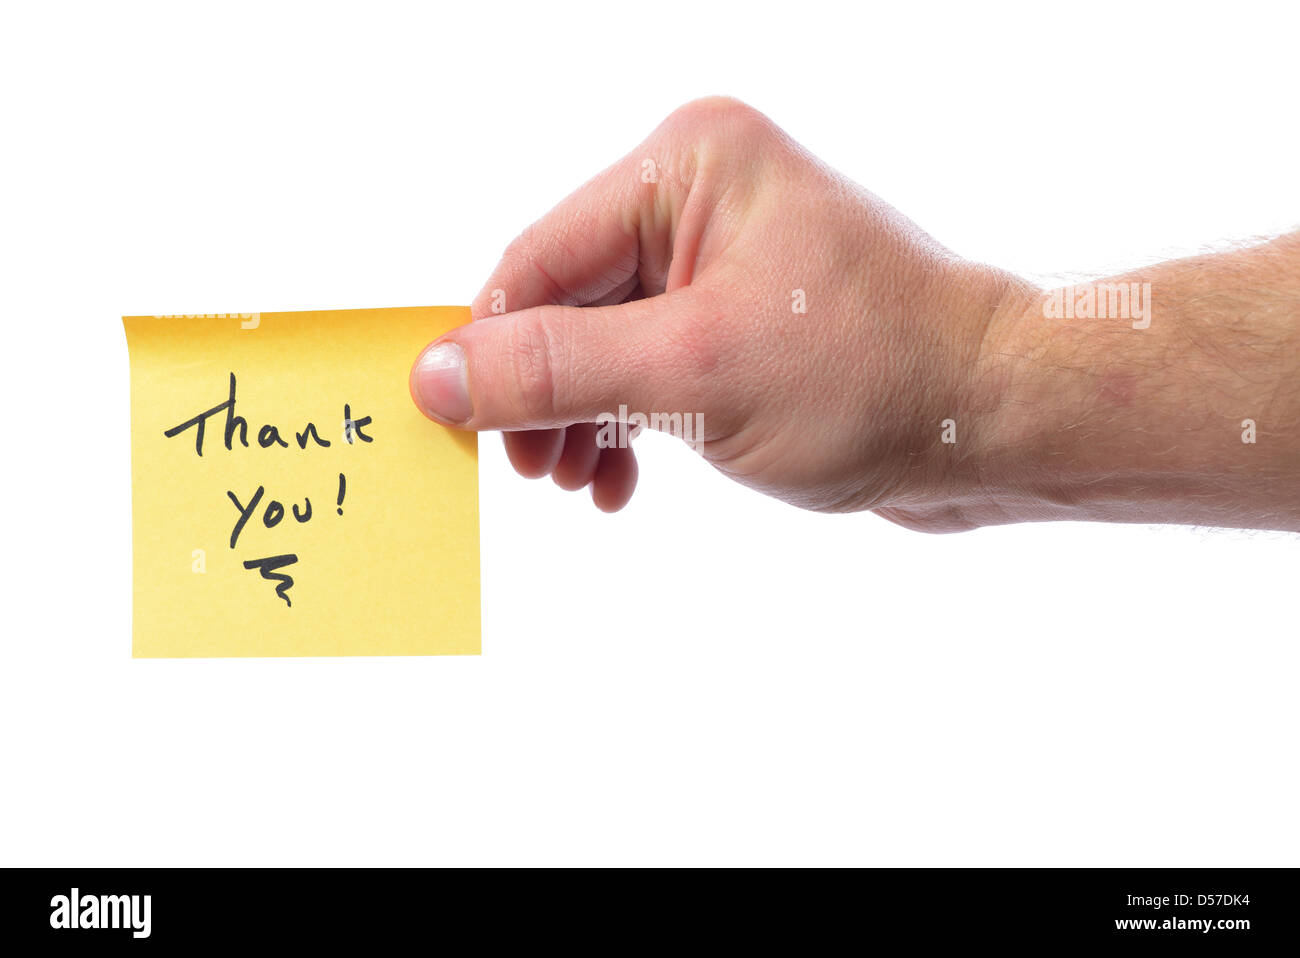 Post-it vous dire merci isolated on white Photo Stock